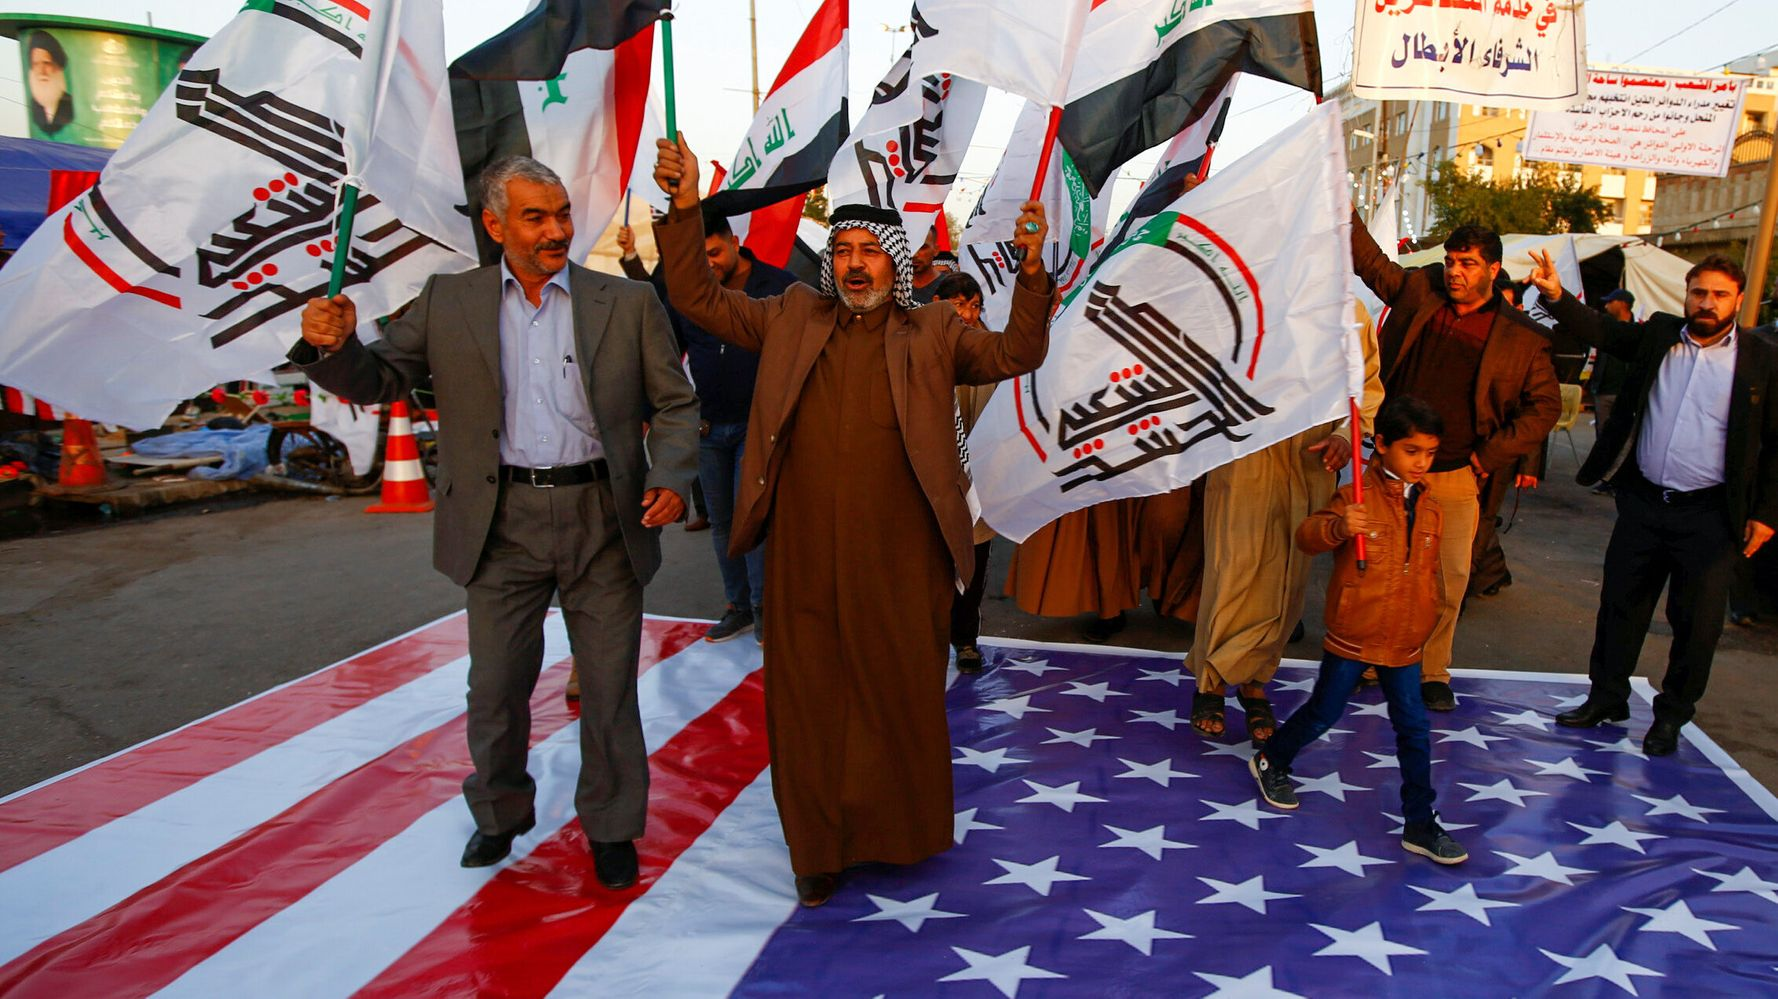 Westlake Legal Group 5e0aa54424000041245a4972 Iraq Condemns U.S. Air Strikes As Unacceptable And Dangerous